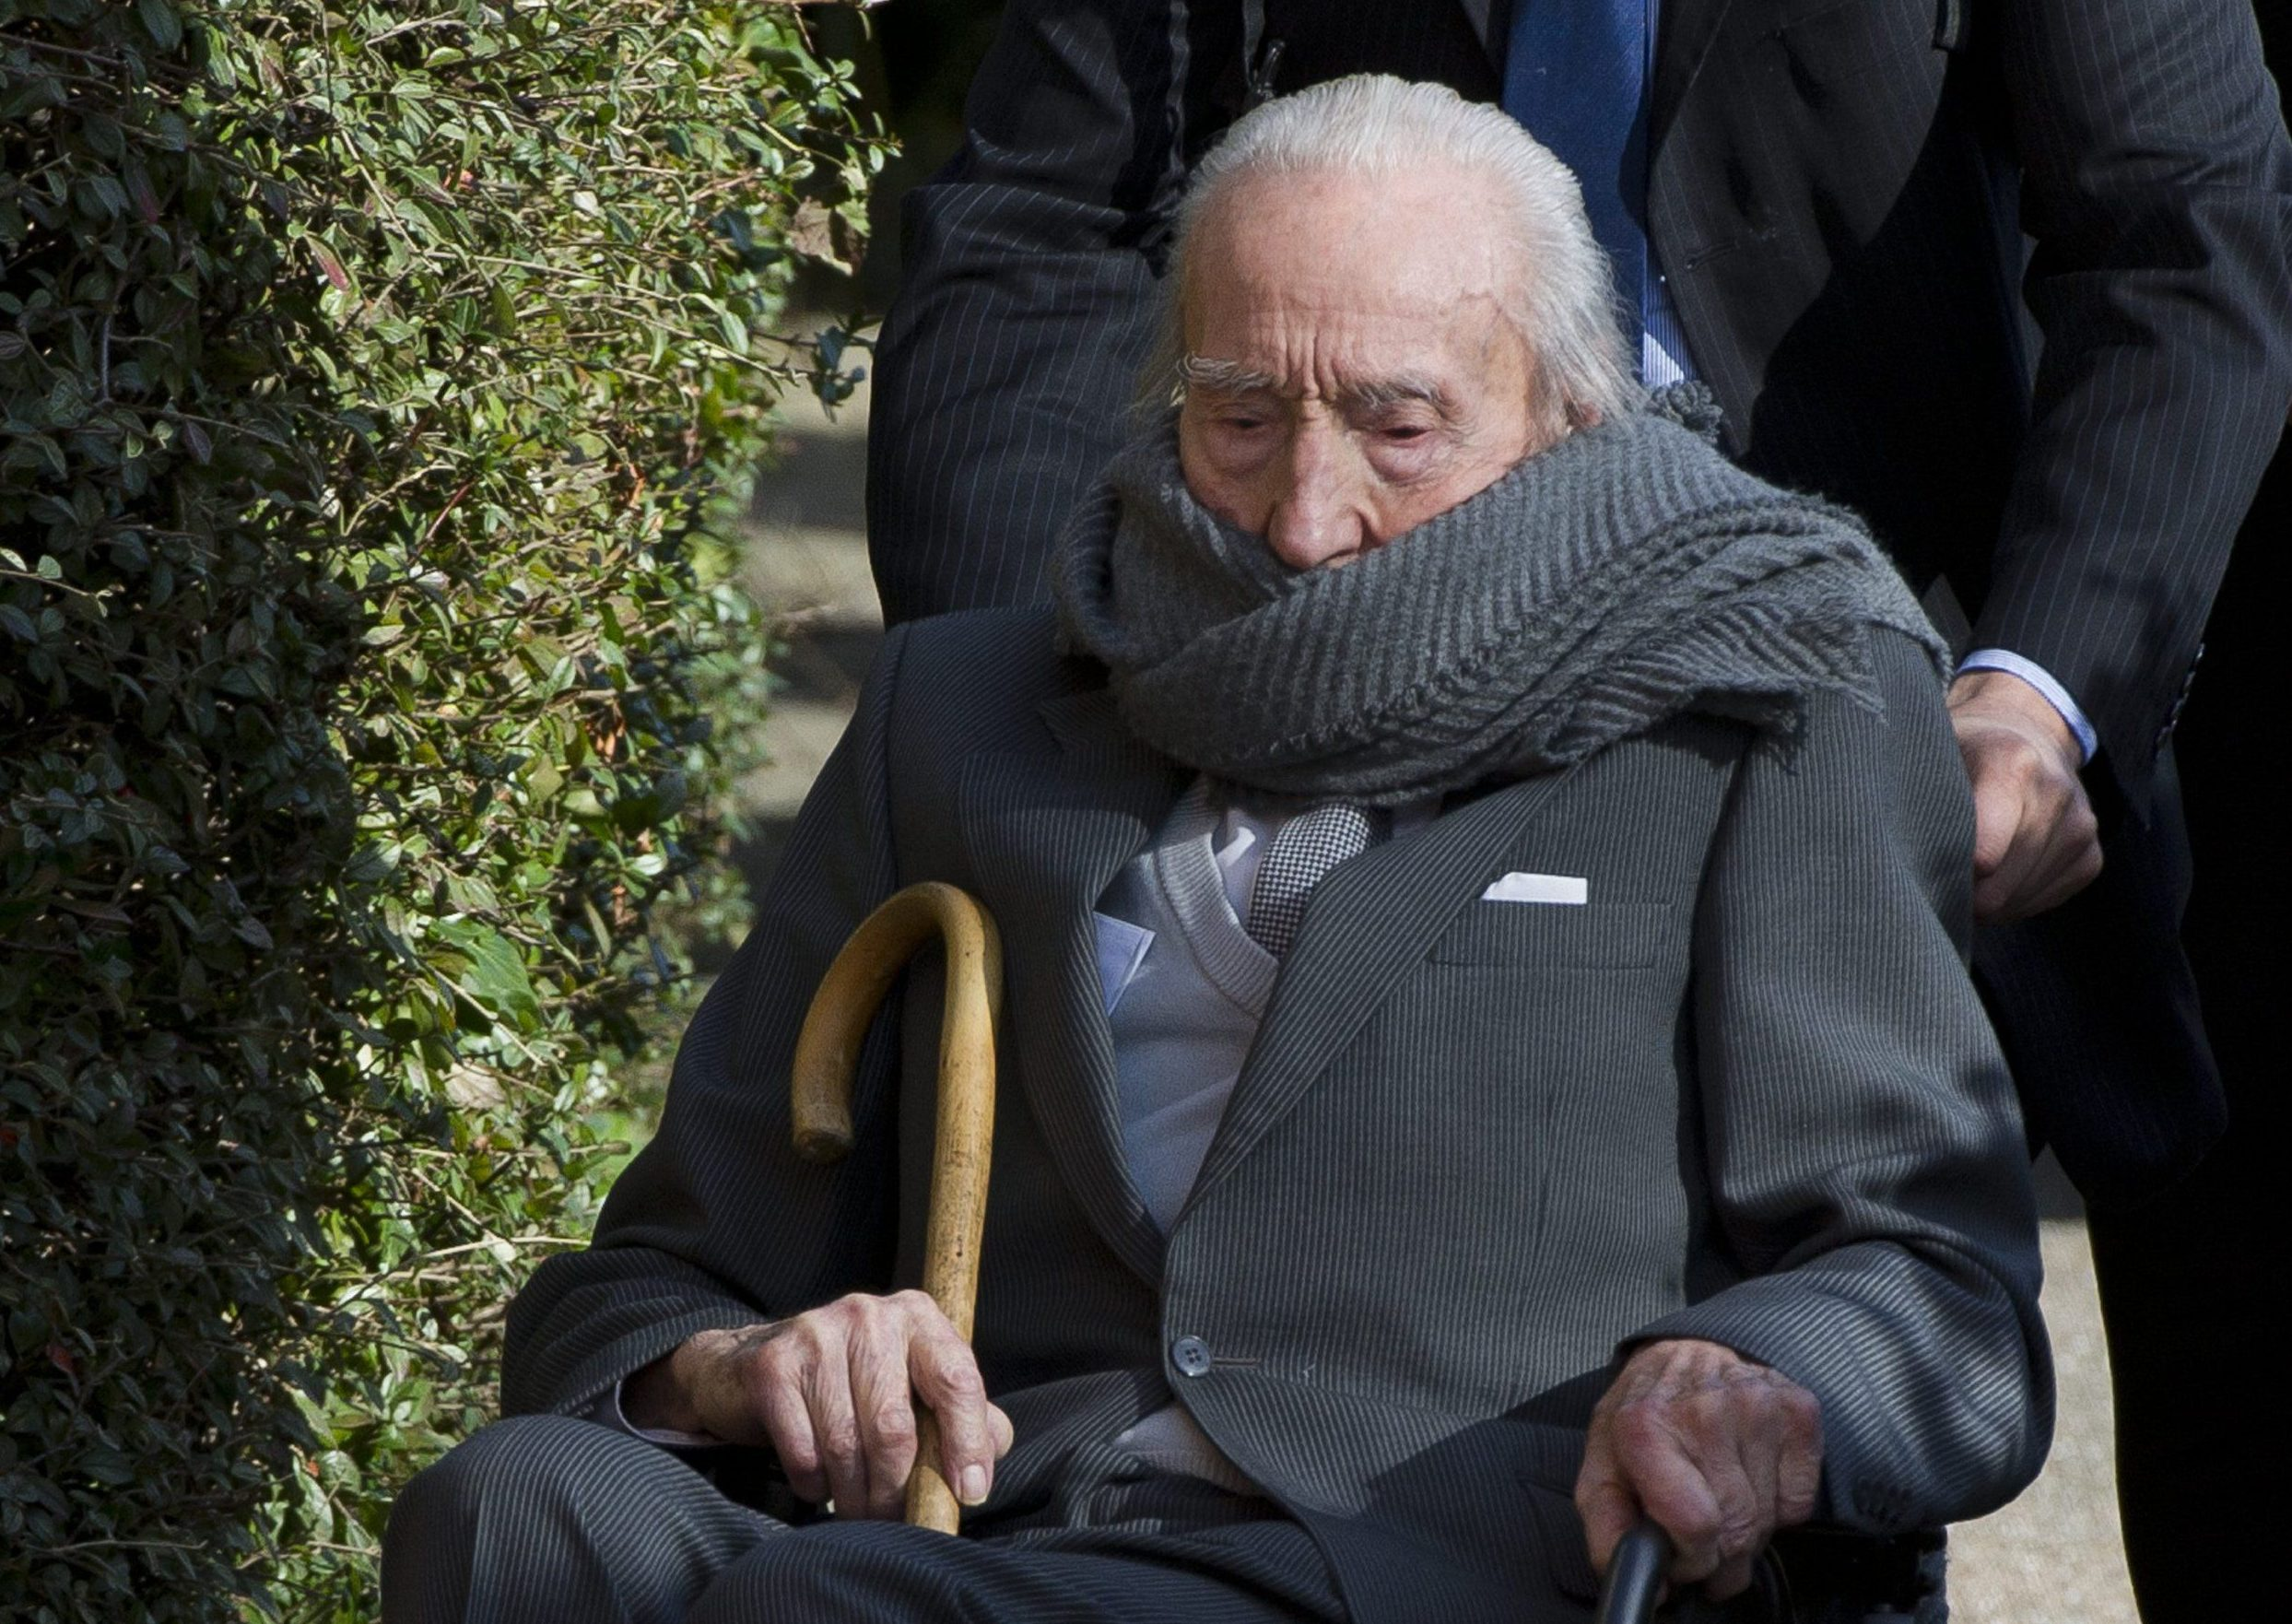 101-year-old paedophile ordered to pay victim £25,000